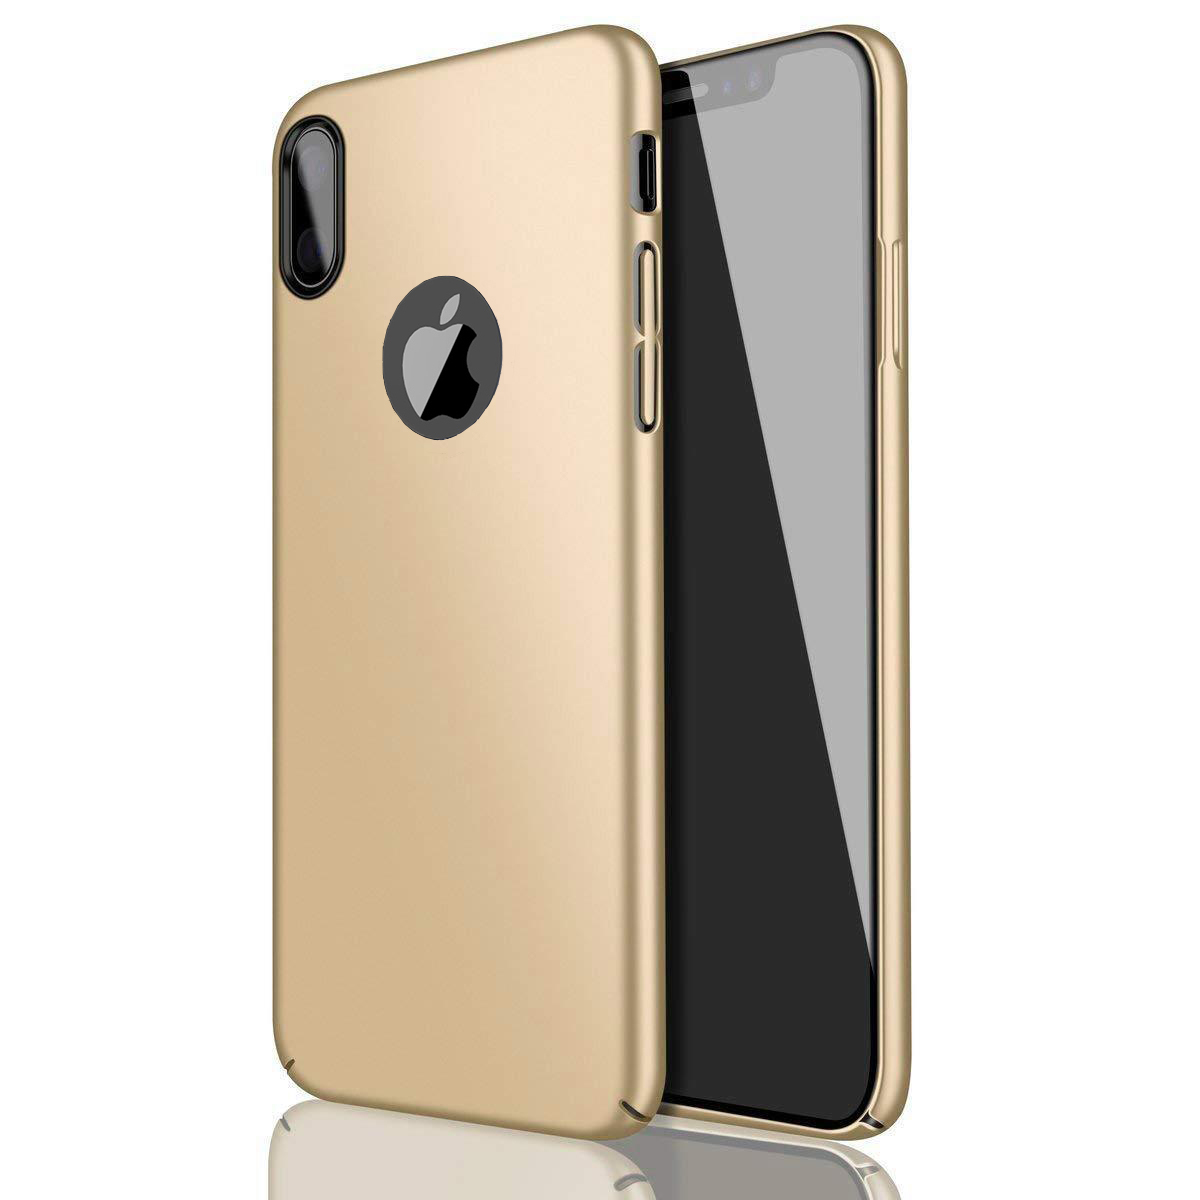 Thin-Slim-Hard-Case-Tempered-Glass-Cover-For-Apple-iPhone-X-XS-XR-Max-10-8-7-6s miniatuur 72